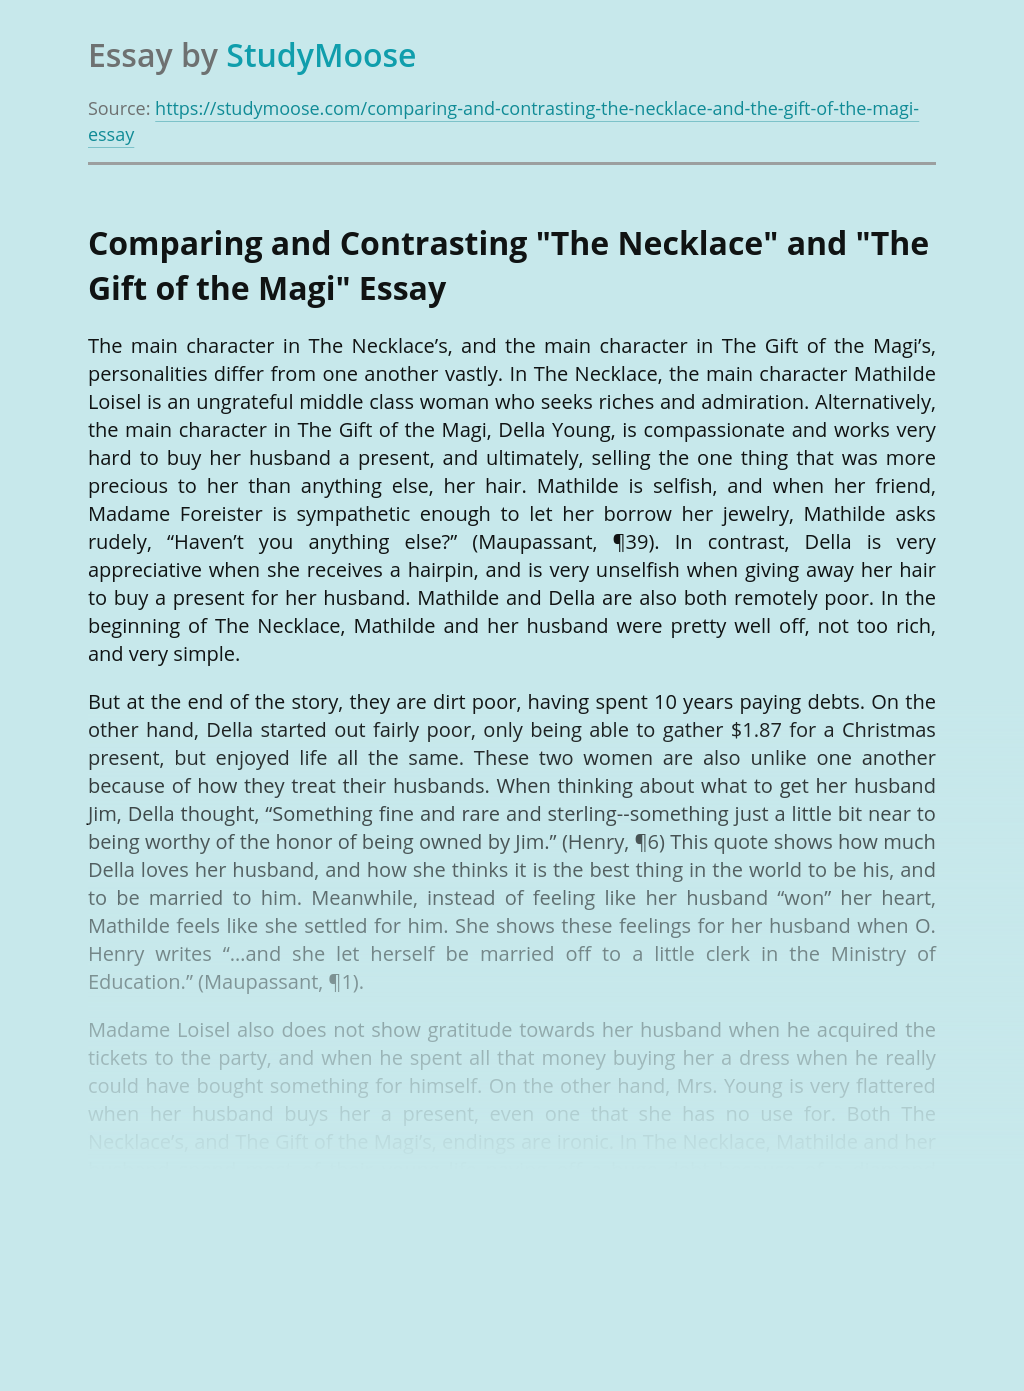 """Comparing and Contrasting """"The Necklace"""" and """"The Gift of the Magi"""""""